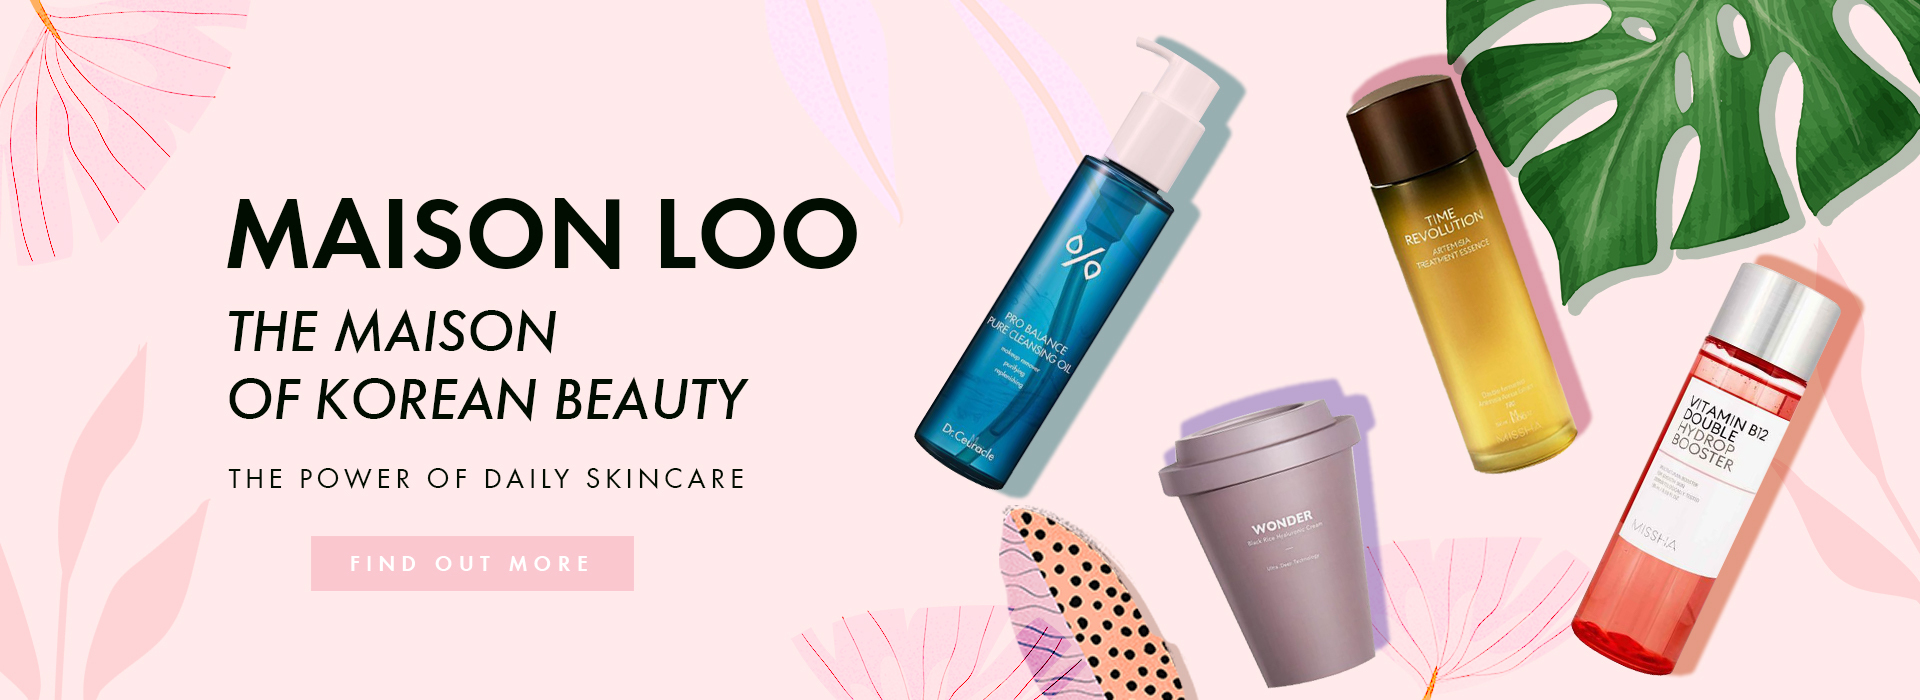 Korean Skincare Products - The power of daily Korean Skincare - Maison Loo